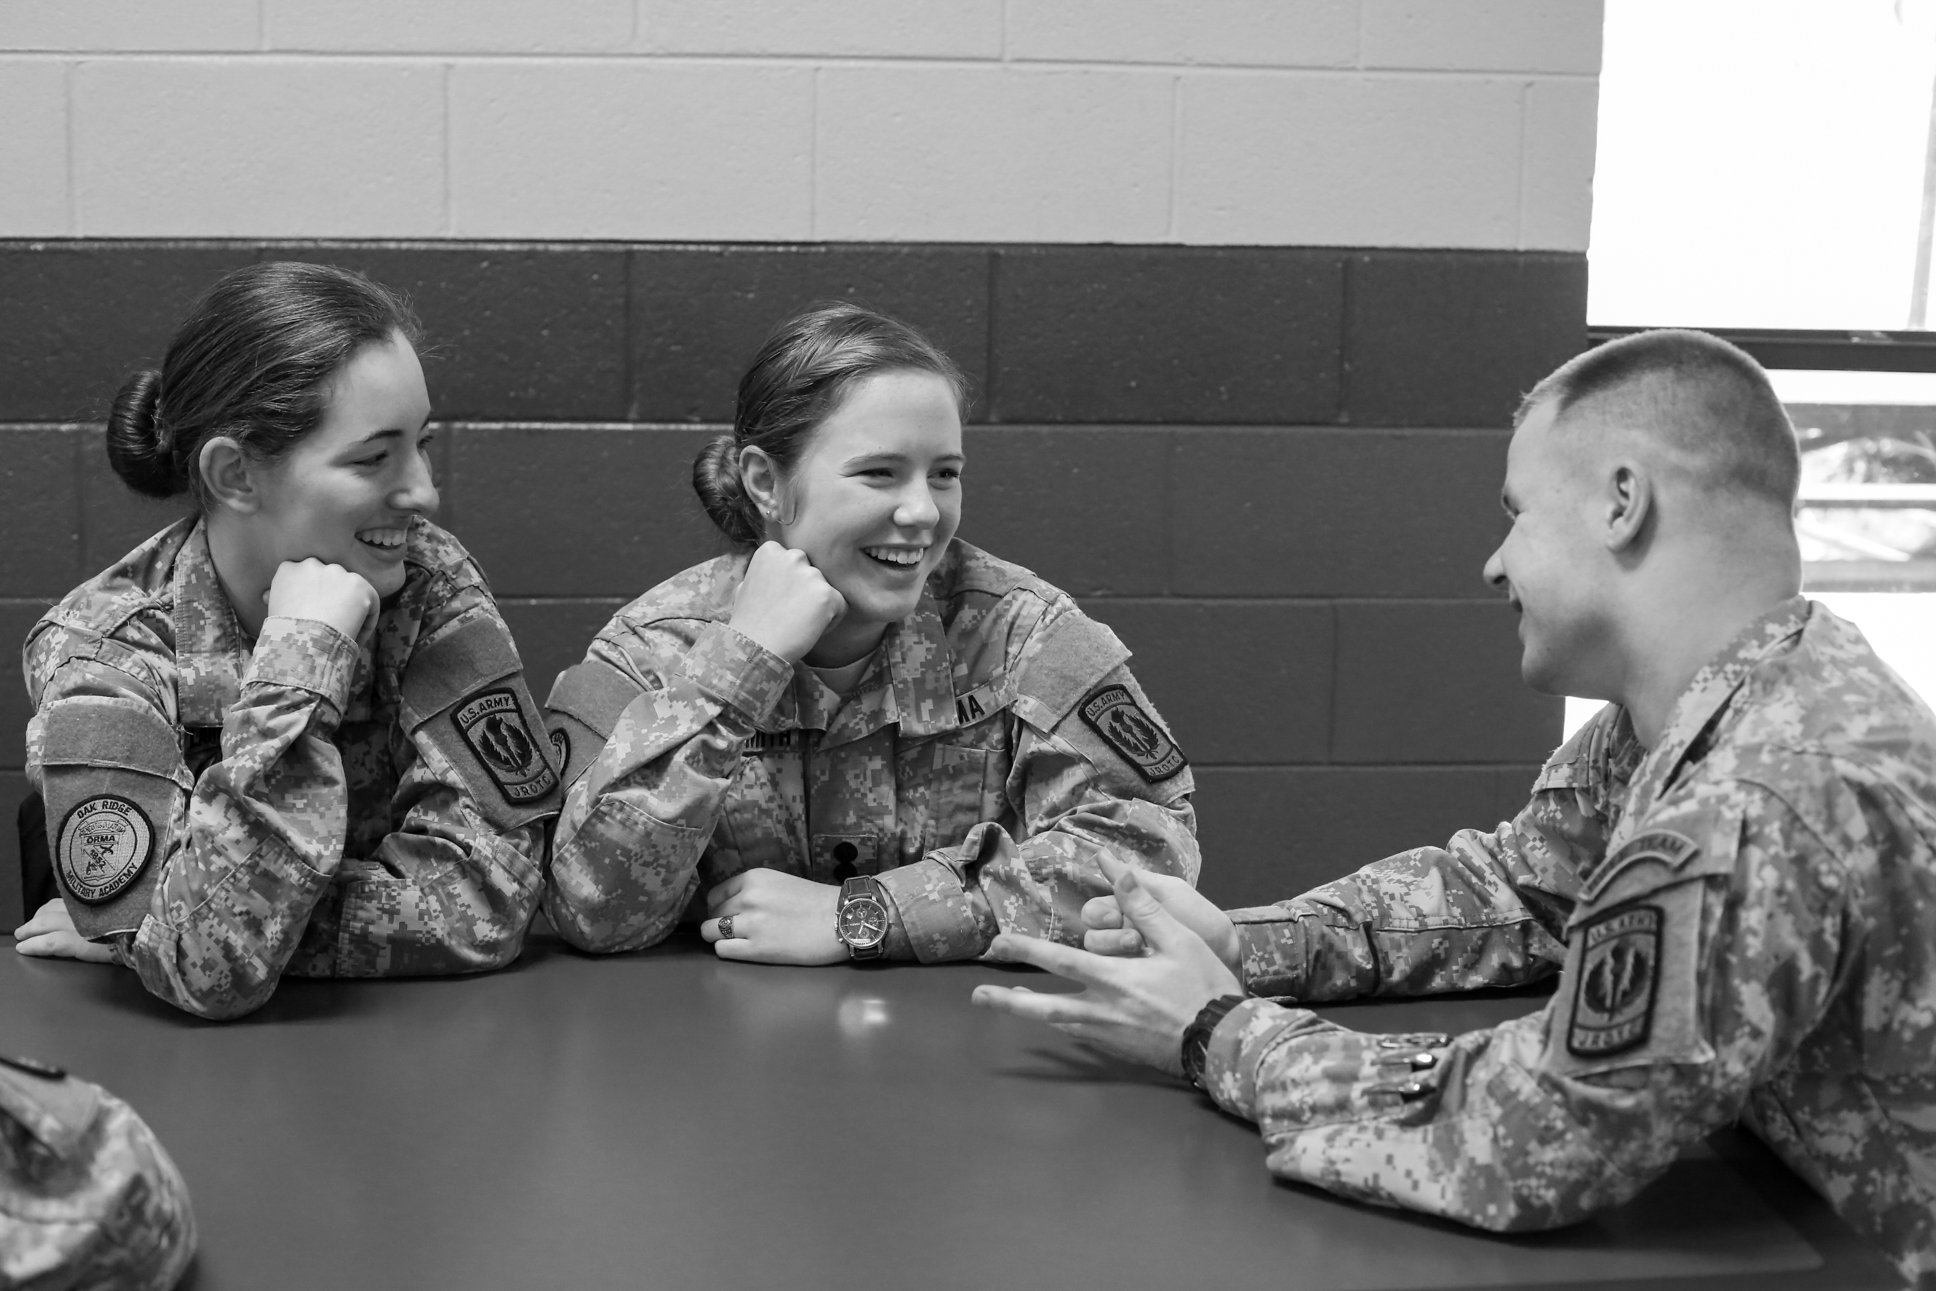 1st Lieutenants and seniors Caitlyn Lambe, Rihanna Davies-Smith and Stephen Davies- Smith, joke around during lunch. Certain privileges are afforded to the senior officers, including lax rules of the strict military school lifestyle.